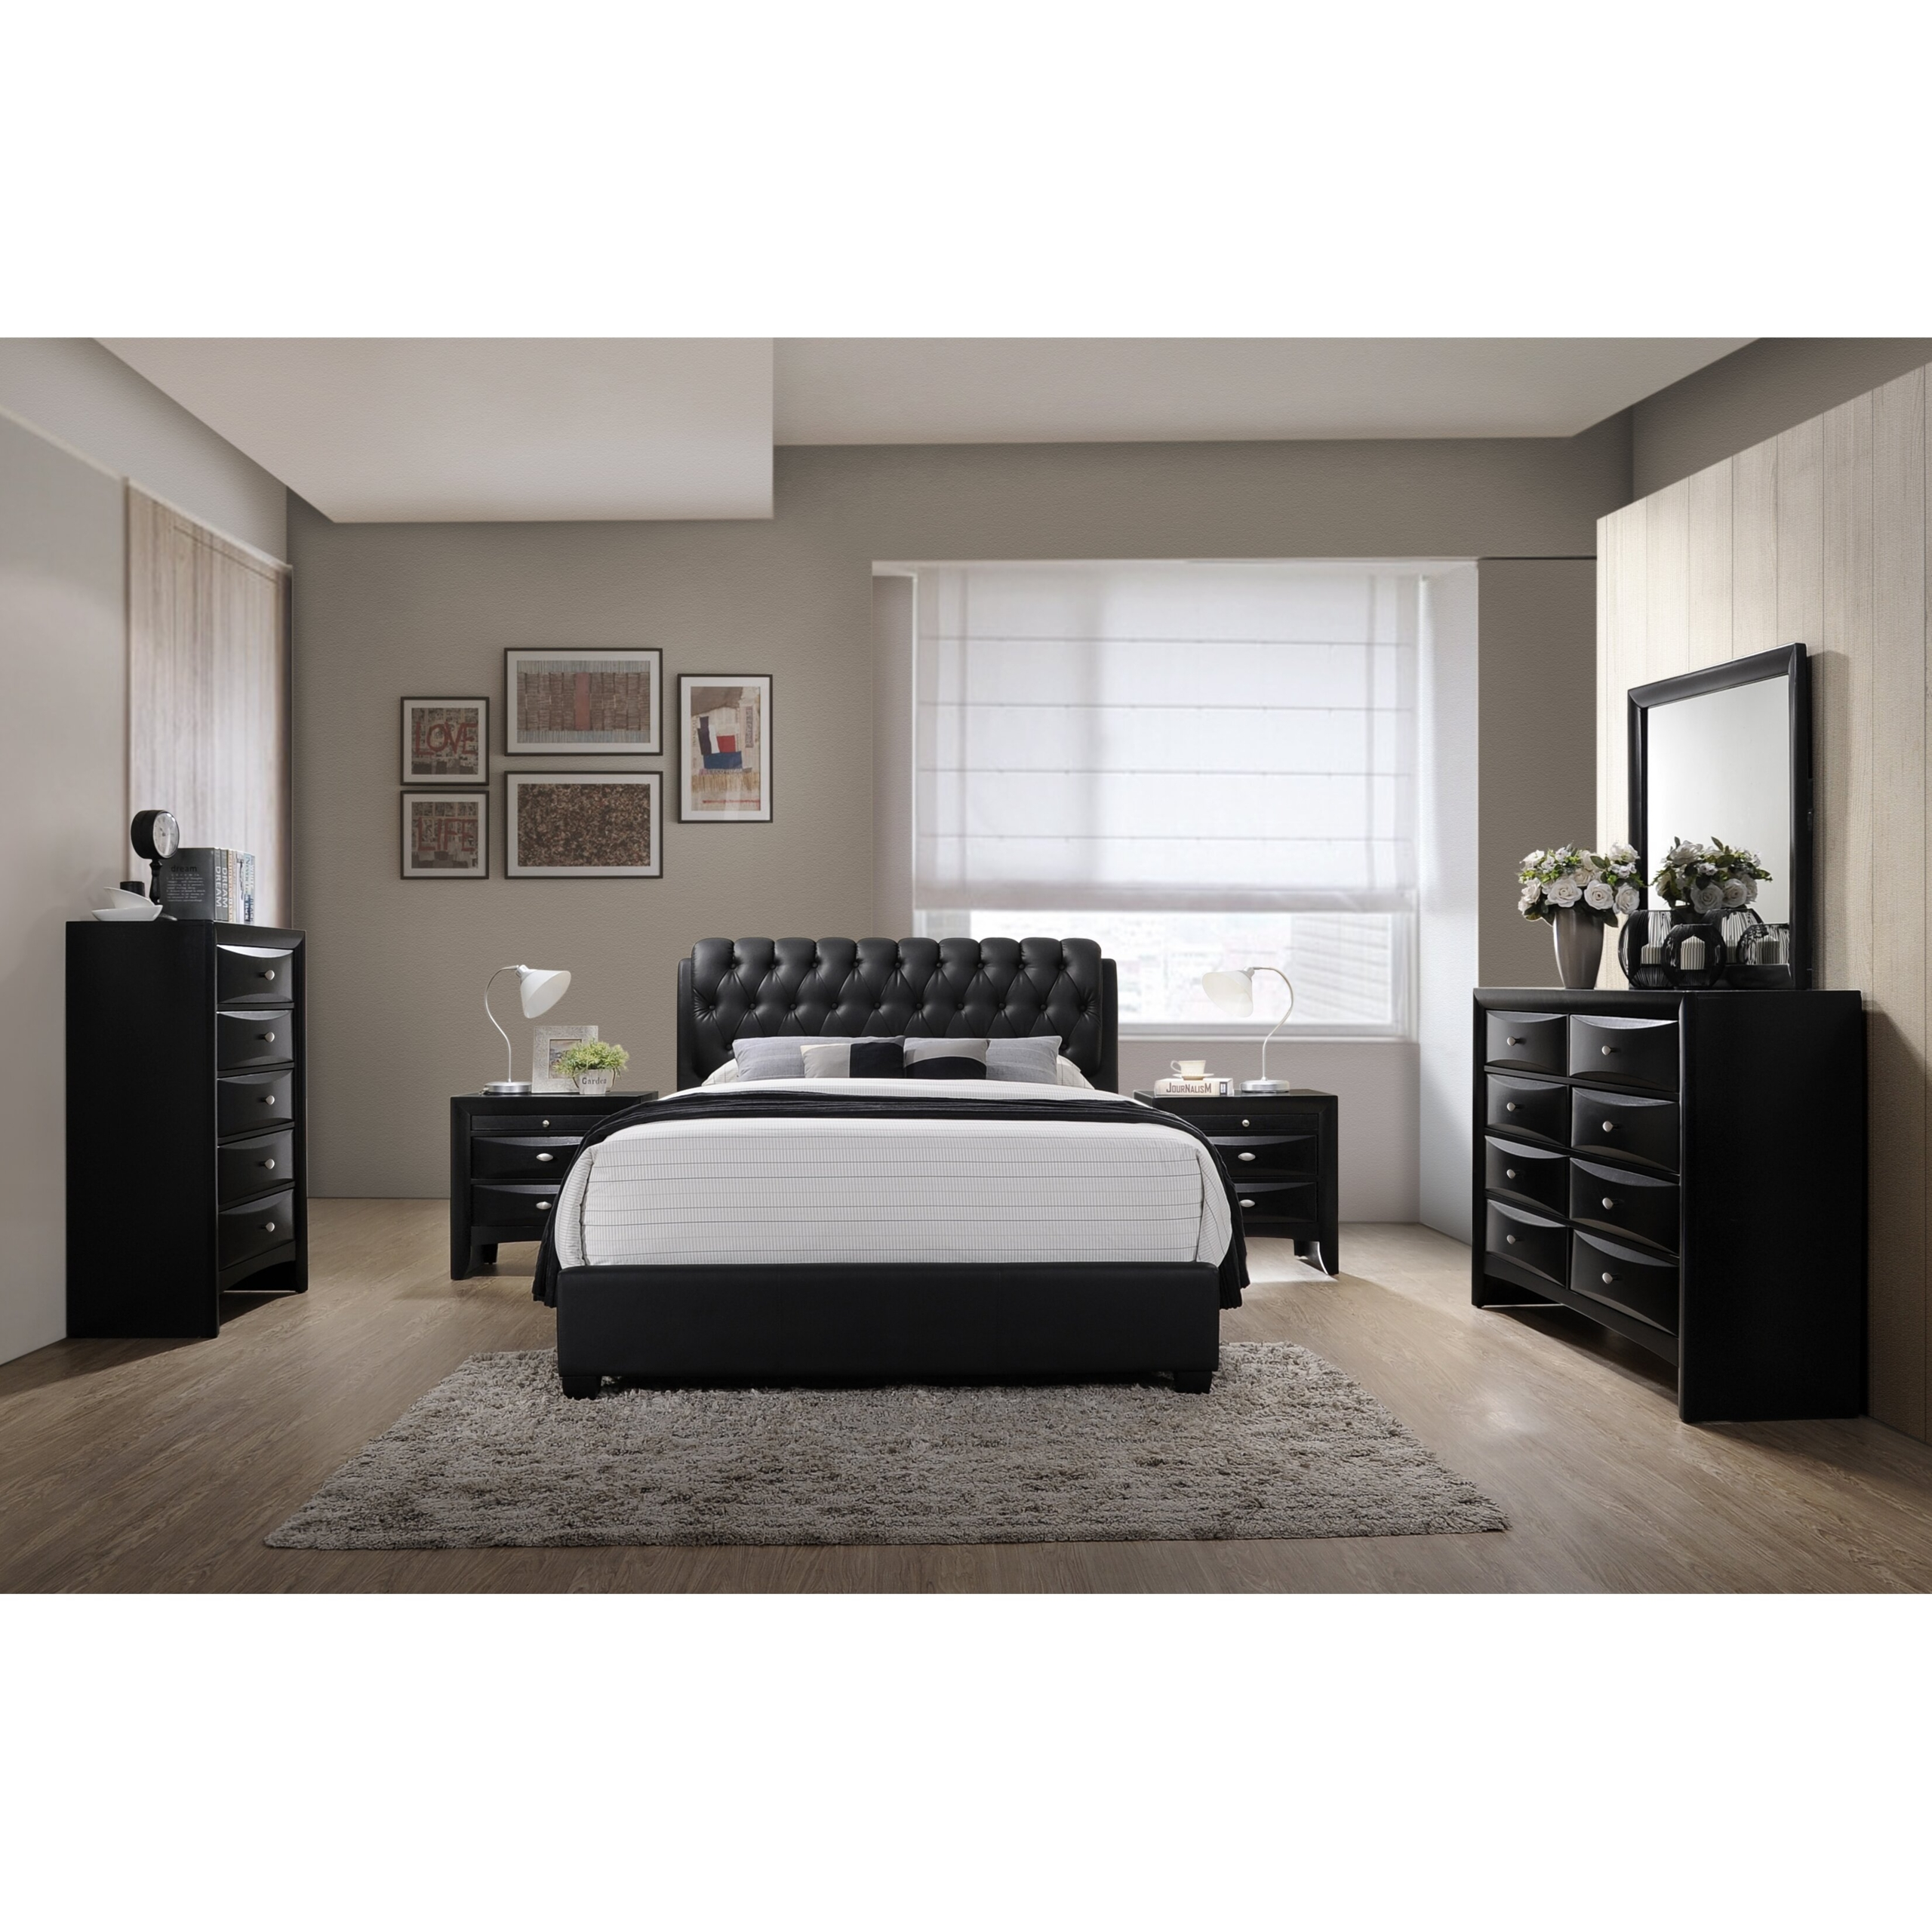 Asian Bedroom Furniture Sets - Visual Hunt